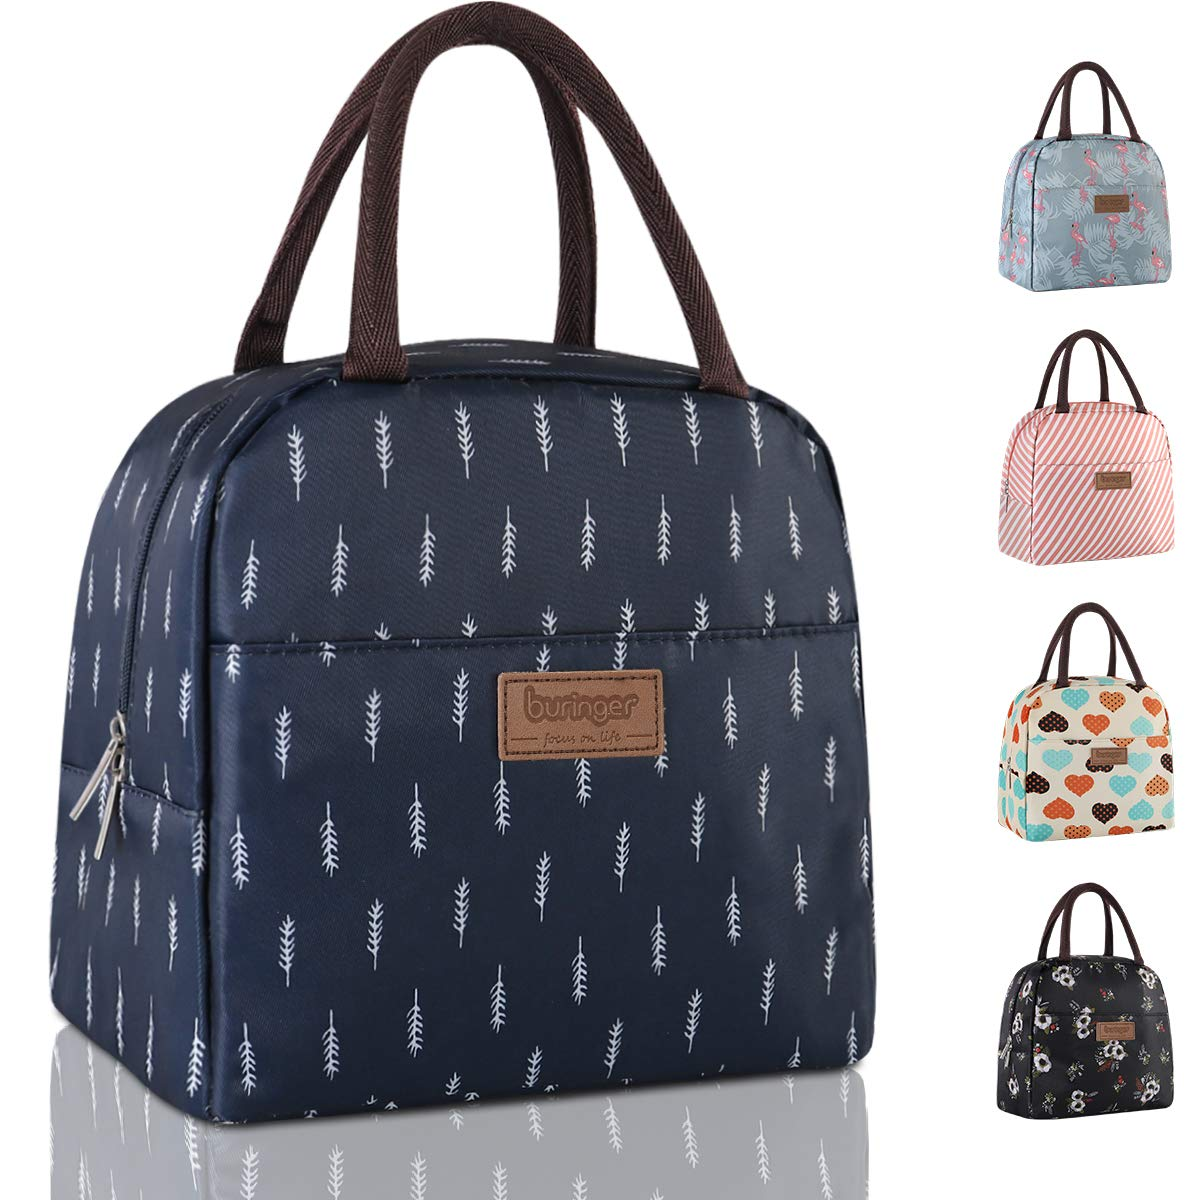 Buringer Insulated Lunch Bag Cooler Tote with Front Pocket Zipper Closure for Woman Man Work Picnic or Travel (Dark Blue Large Size)